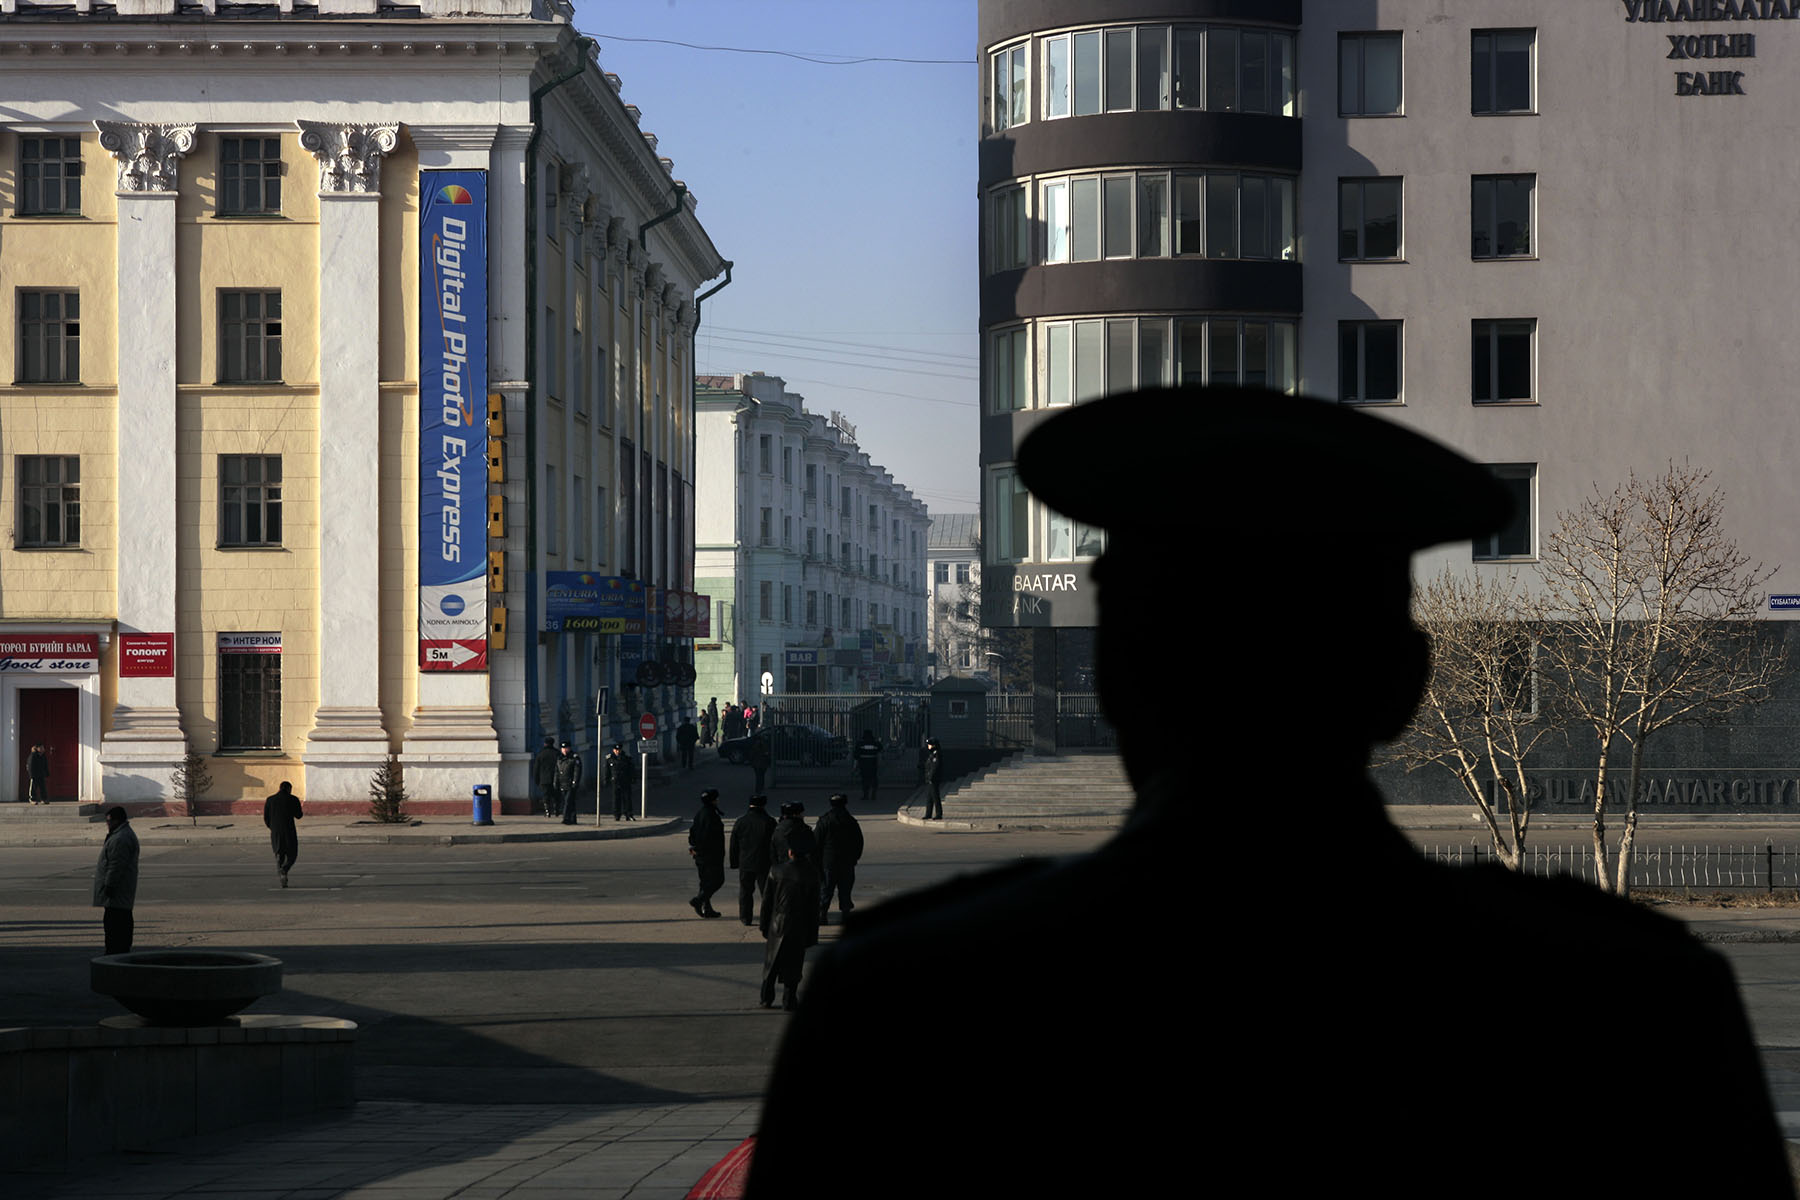 A Soldier from the Mongolian Army watches outside the Government House as preparation were underway for U.S. President George W. Bush's visit, Monday, Nov. 21, 2005 in Ulan Bator, Mongolia.Photo by Brooks Kraft/Corbis